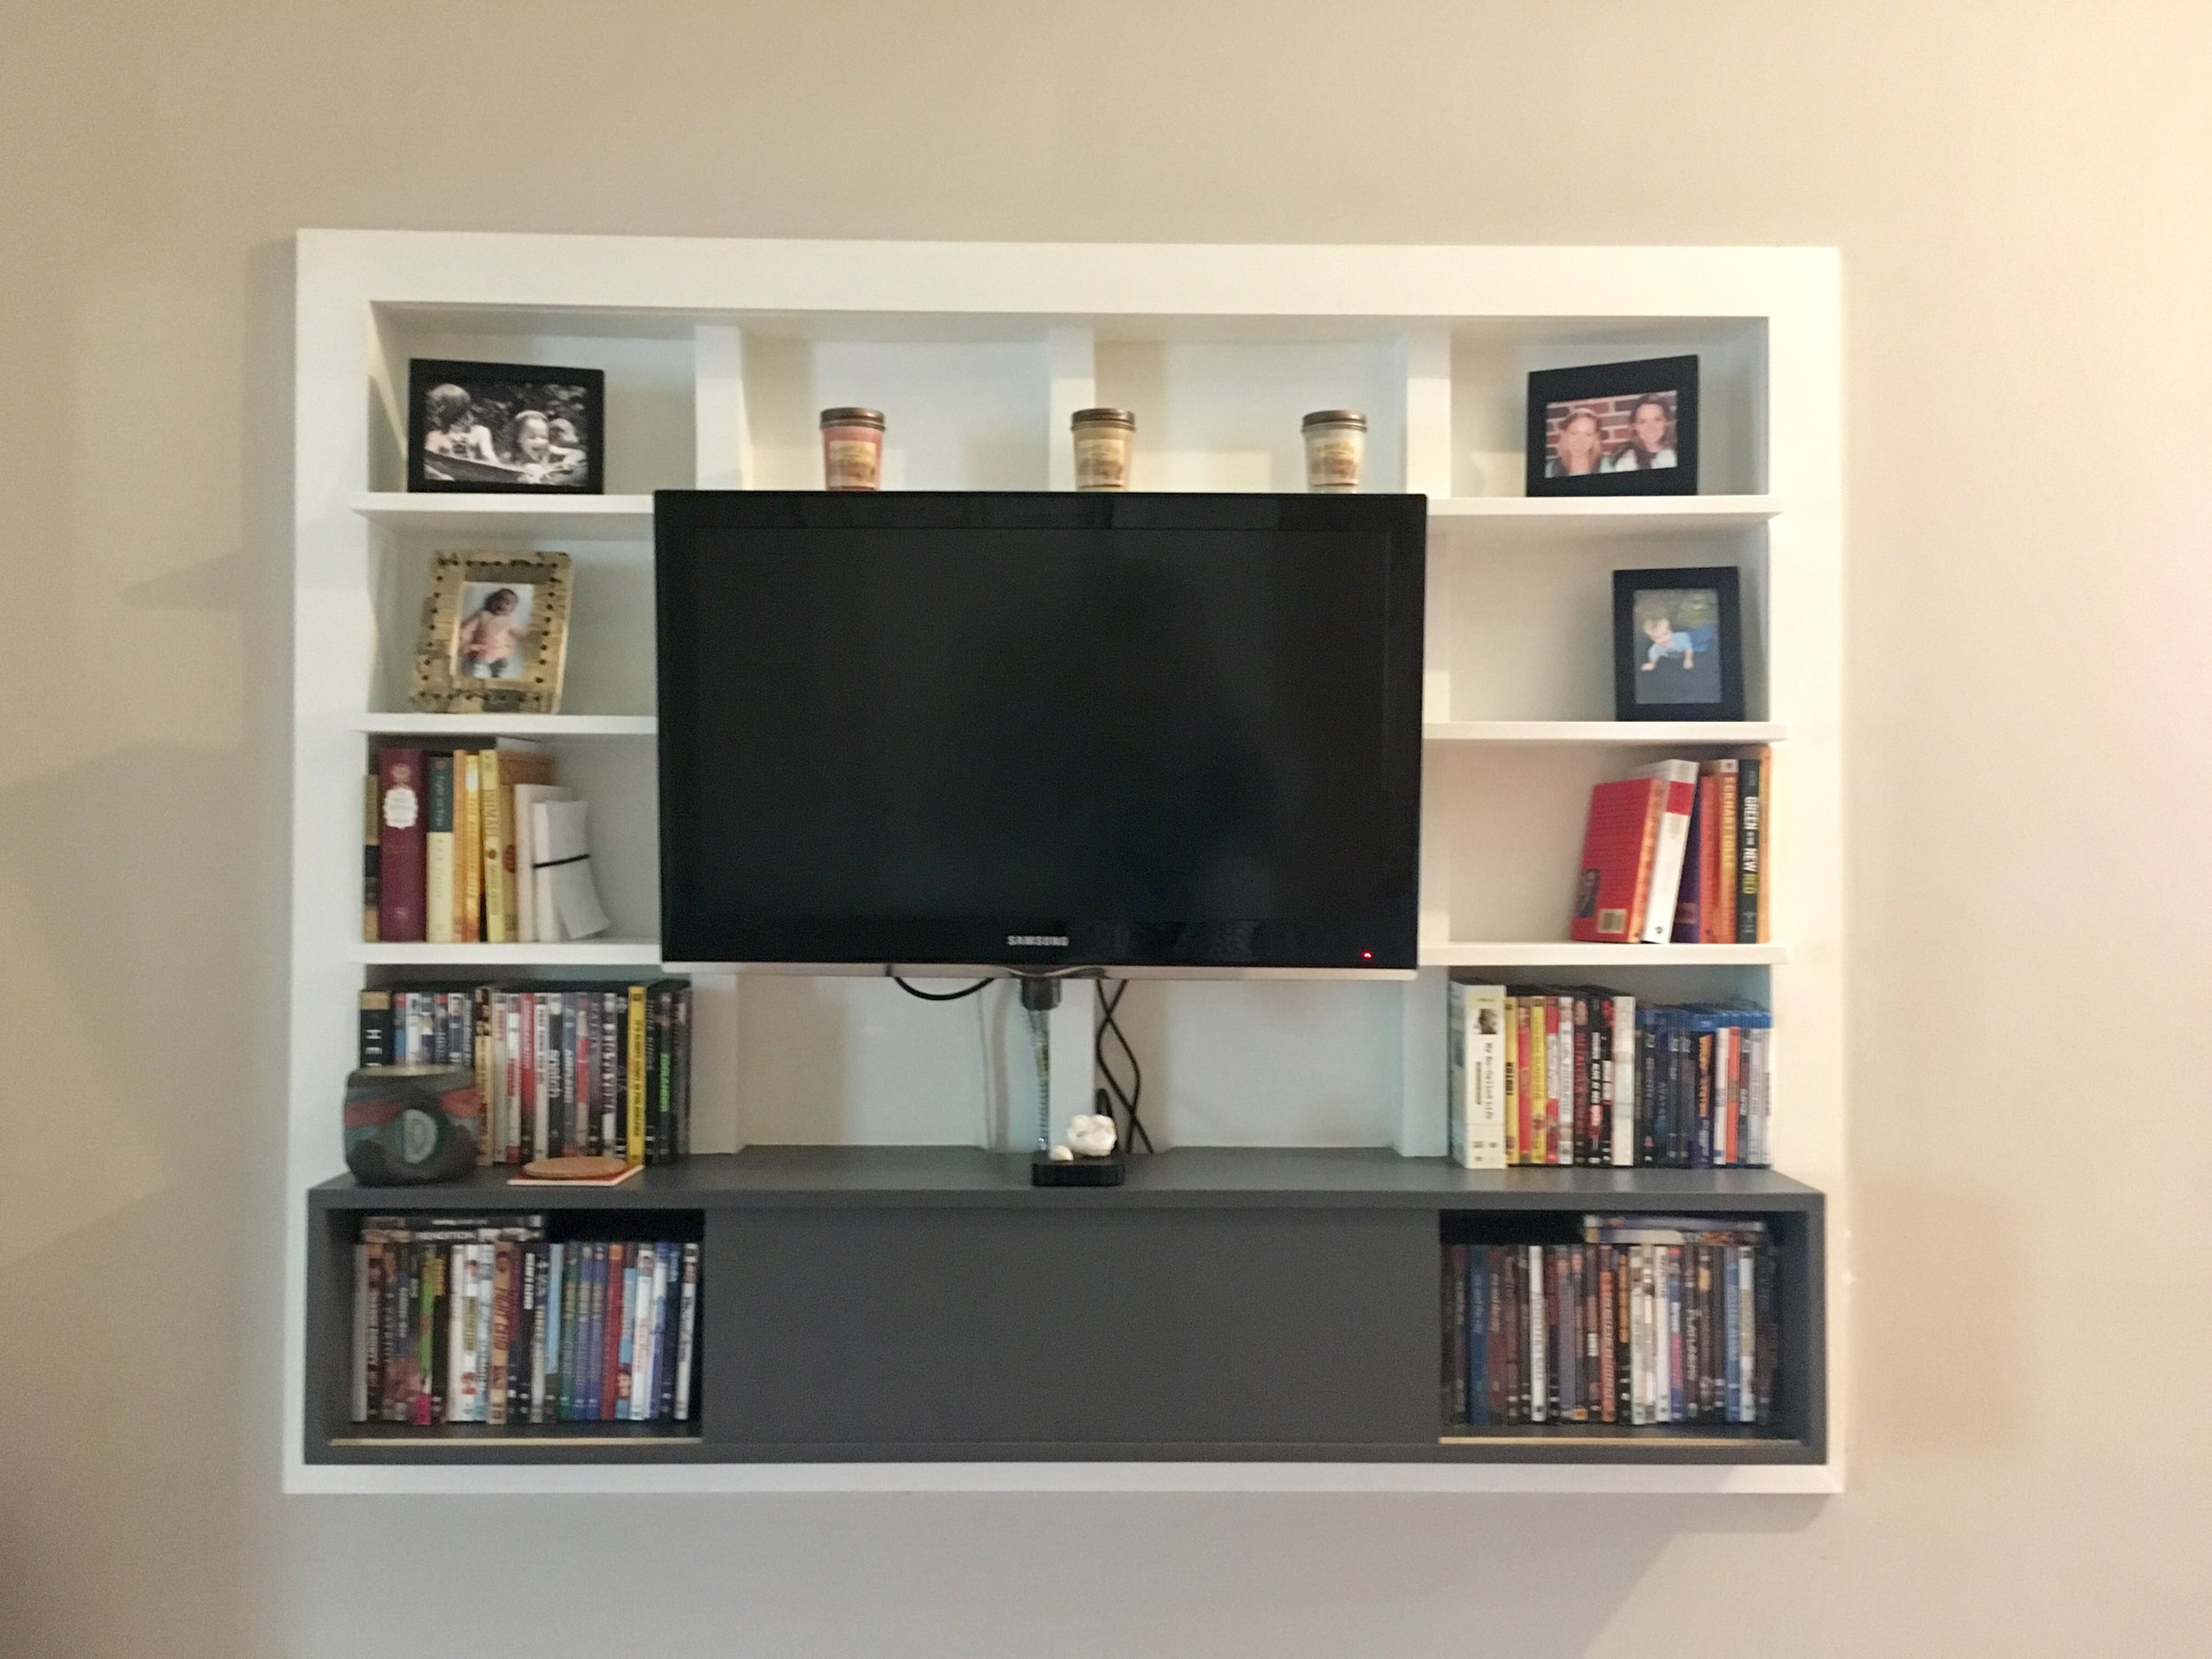 Inlet Entertainment Shelving